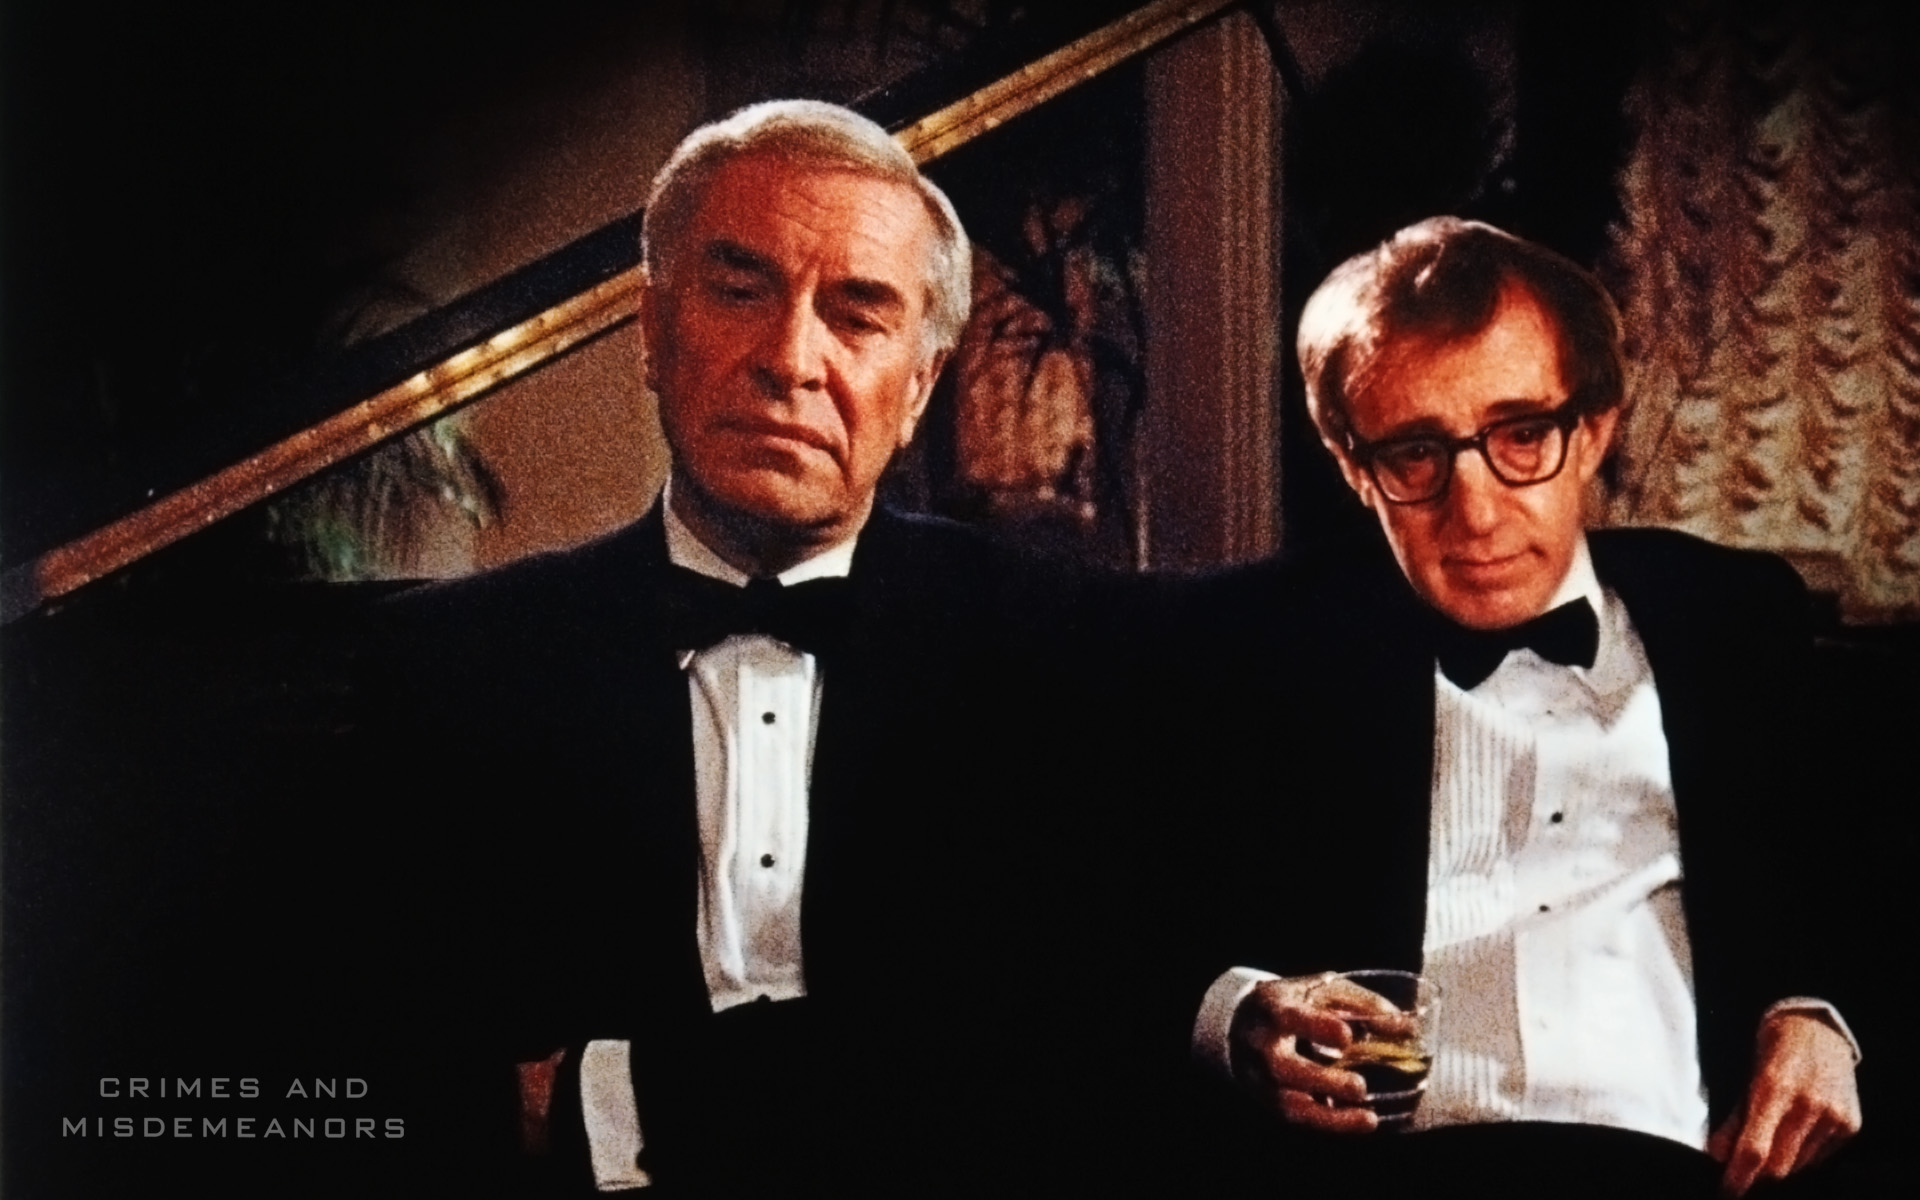 Crimes_and_Misdemeanors_wallpapers_7721.jpg